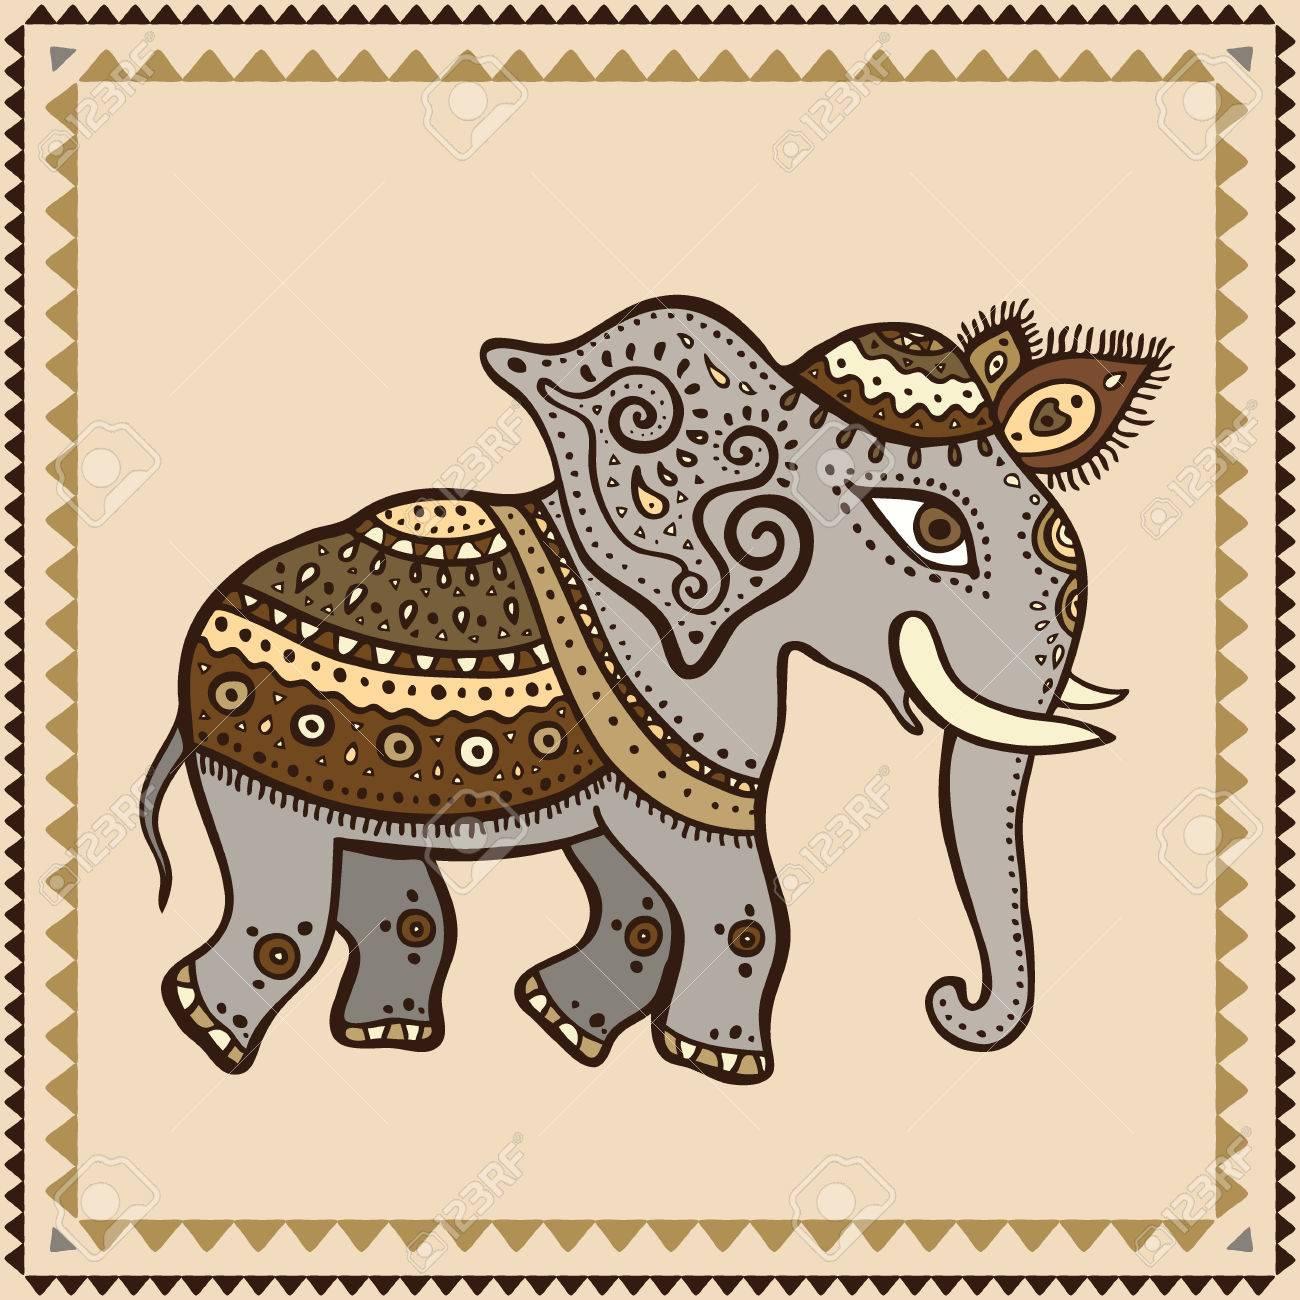 Elephant  Hand Drawn Vector illustration  Indian style Stock Vector - 23983563